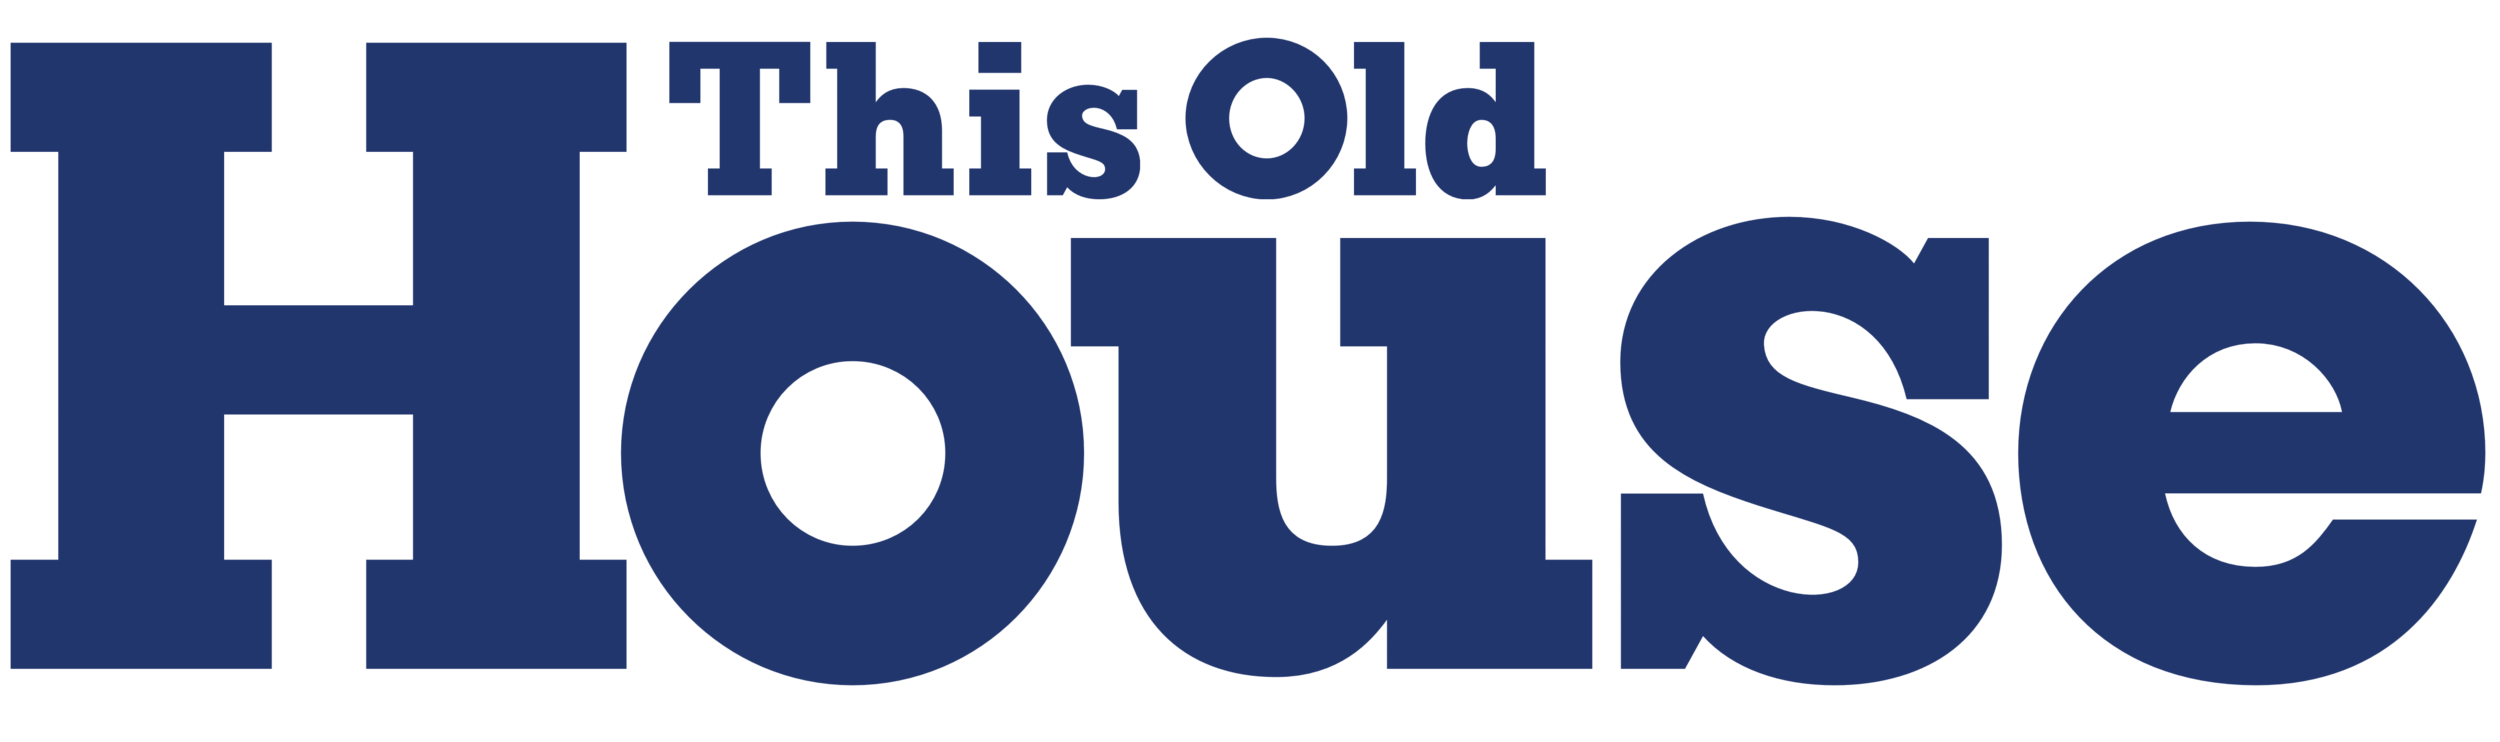 This_Old_House_logo_wordmark.png